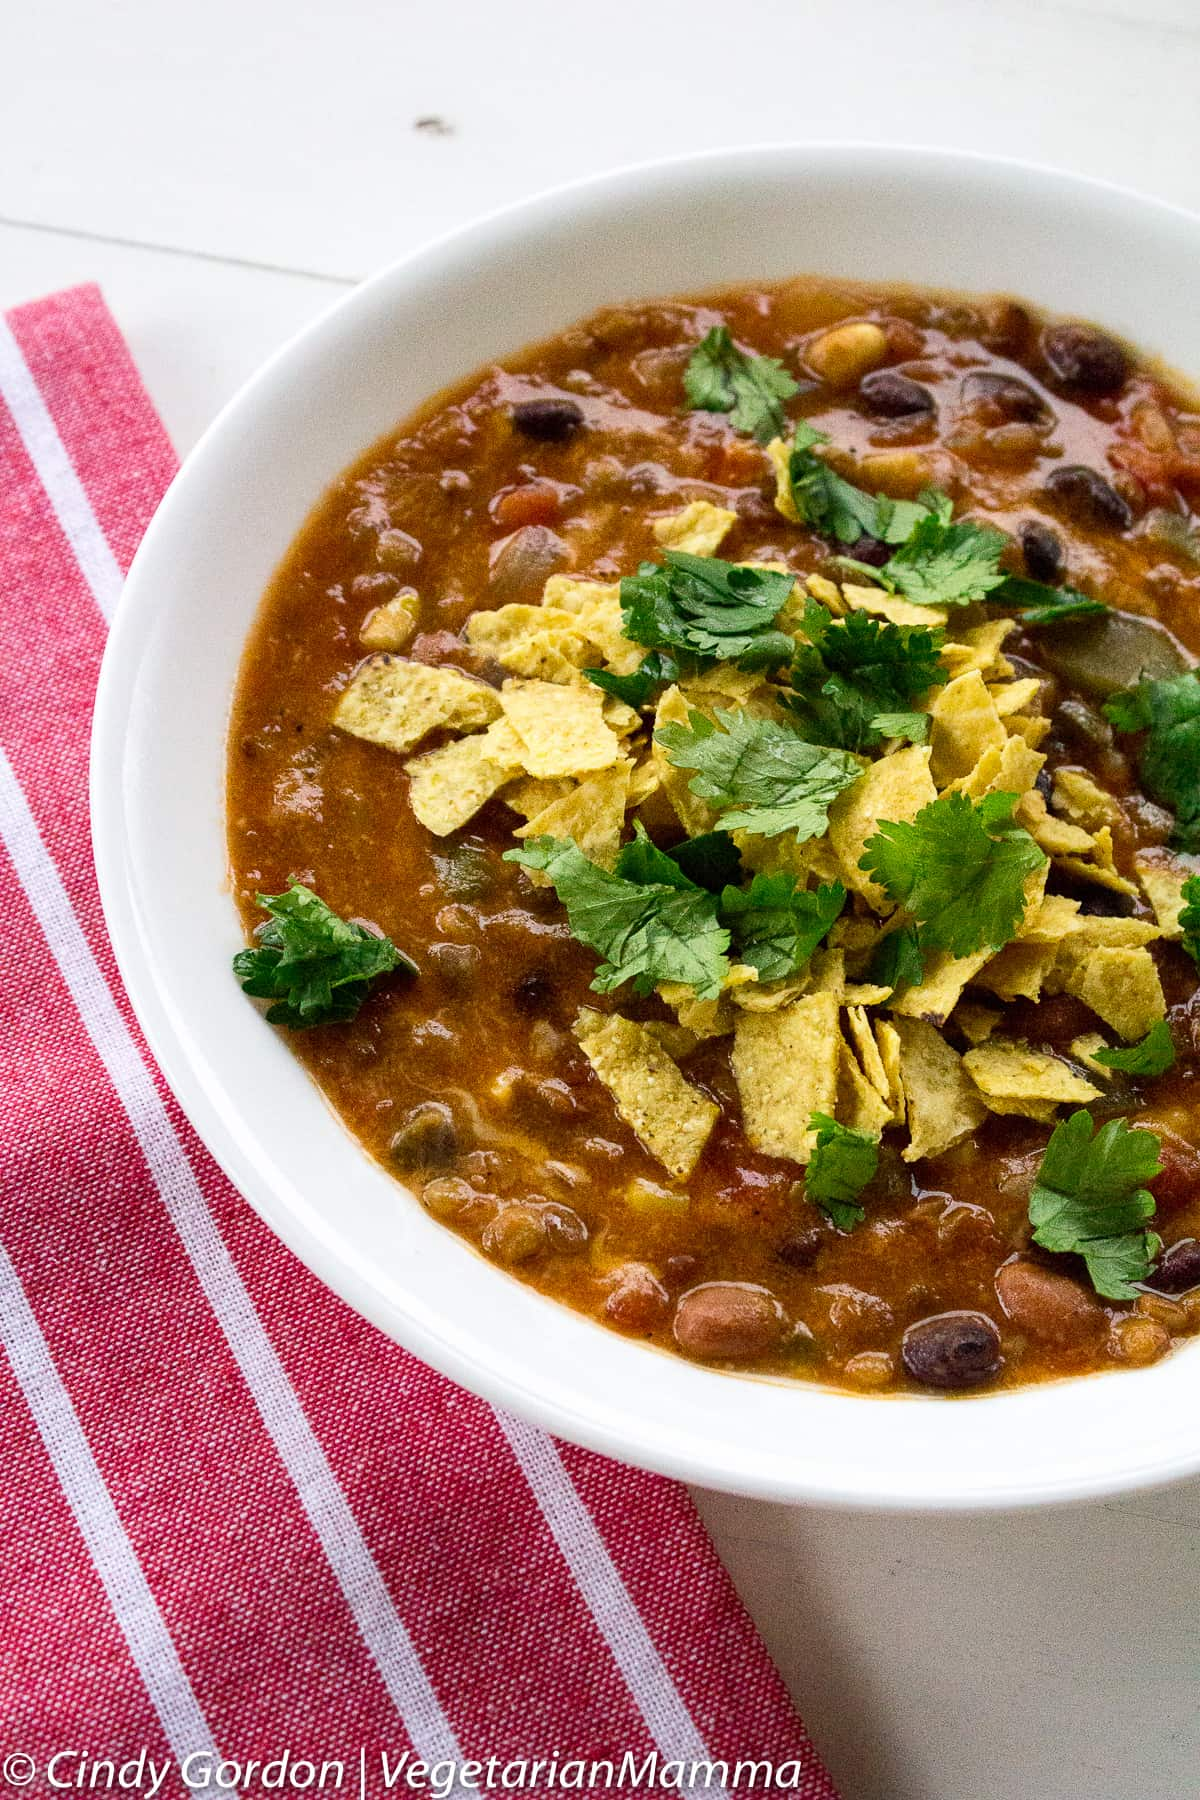 Bowl of Instant Pot Taco Soup